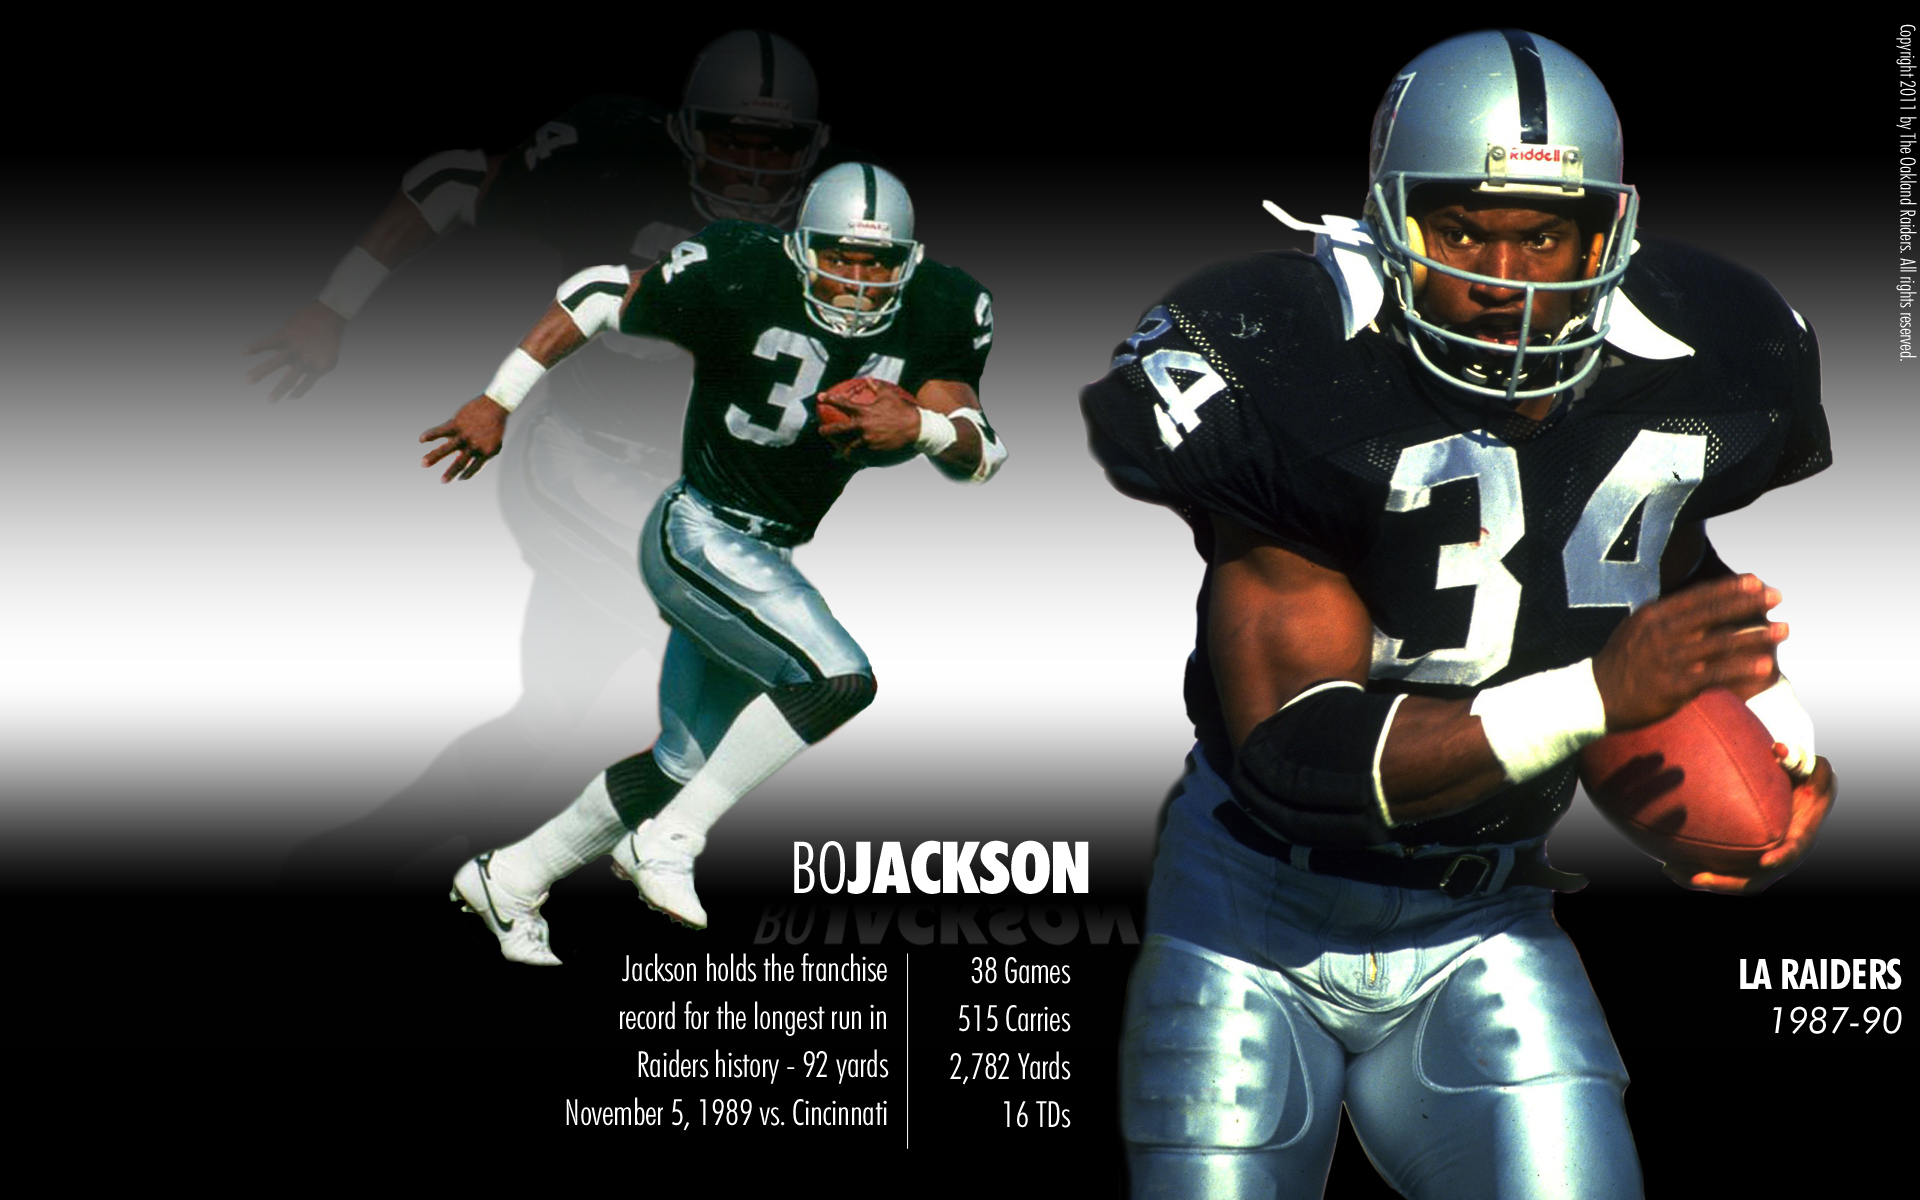 Bo-Jackson-Raider-Highlights-wallpaper-wpc5802969